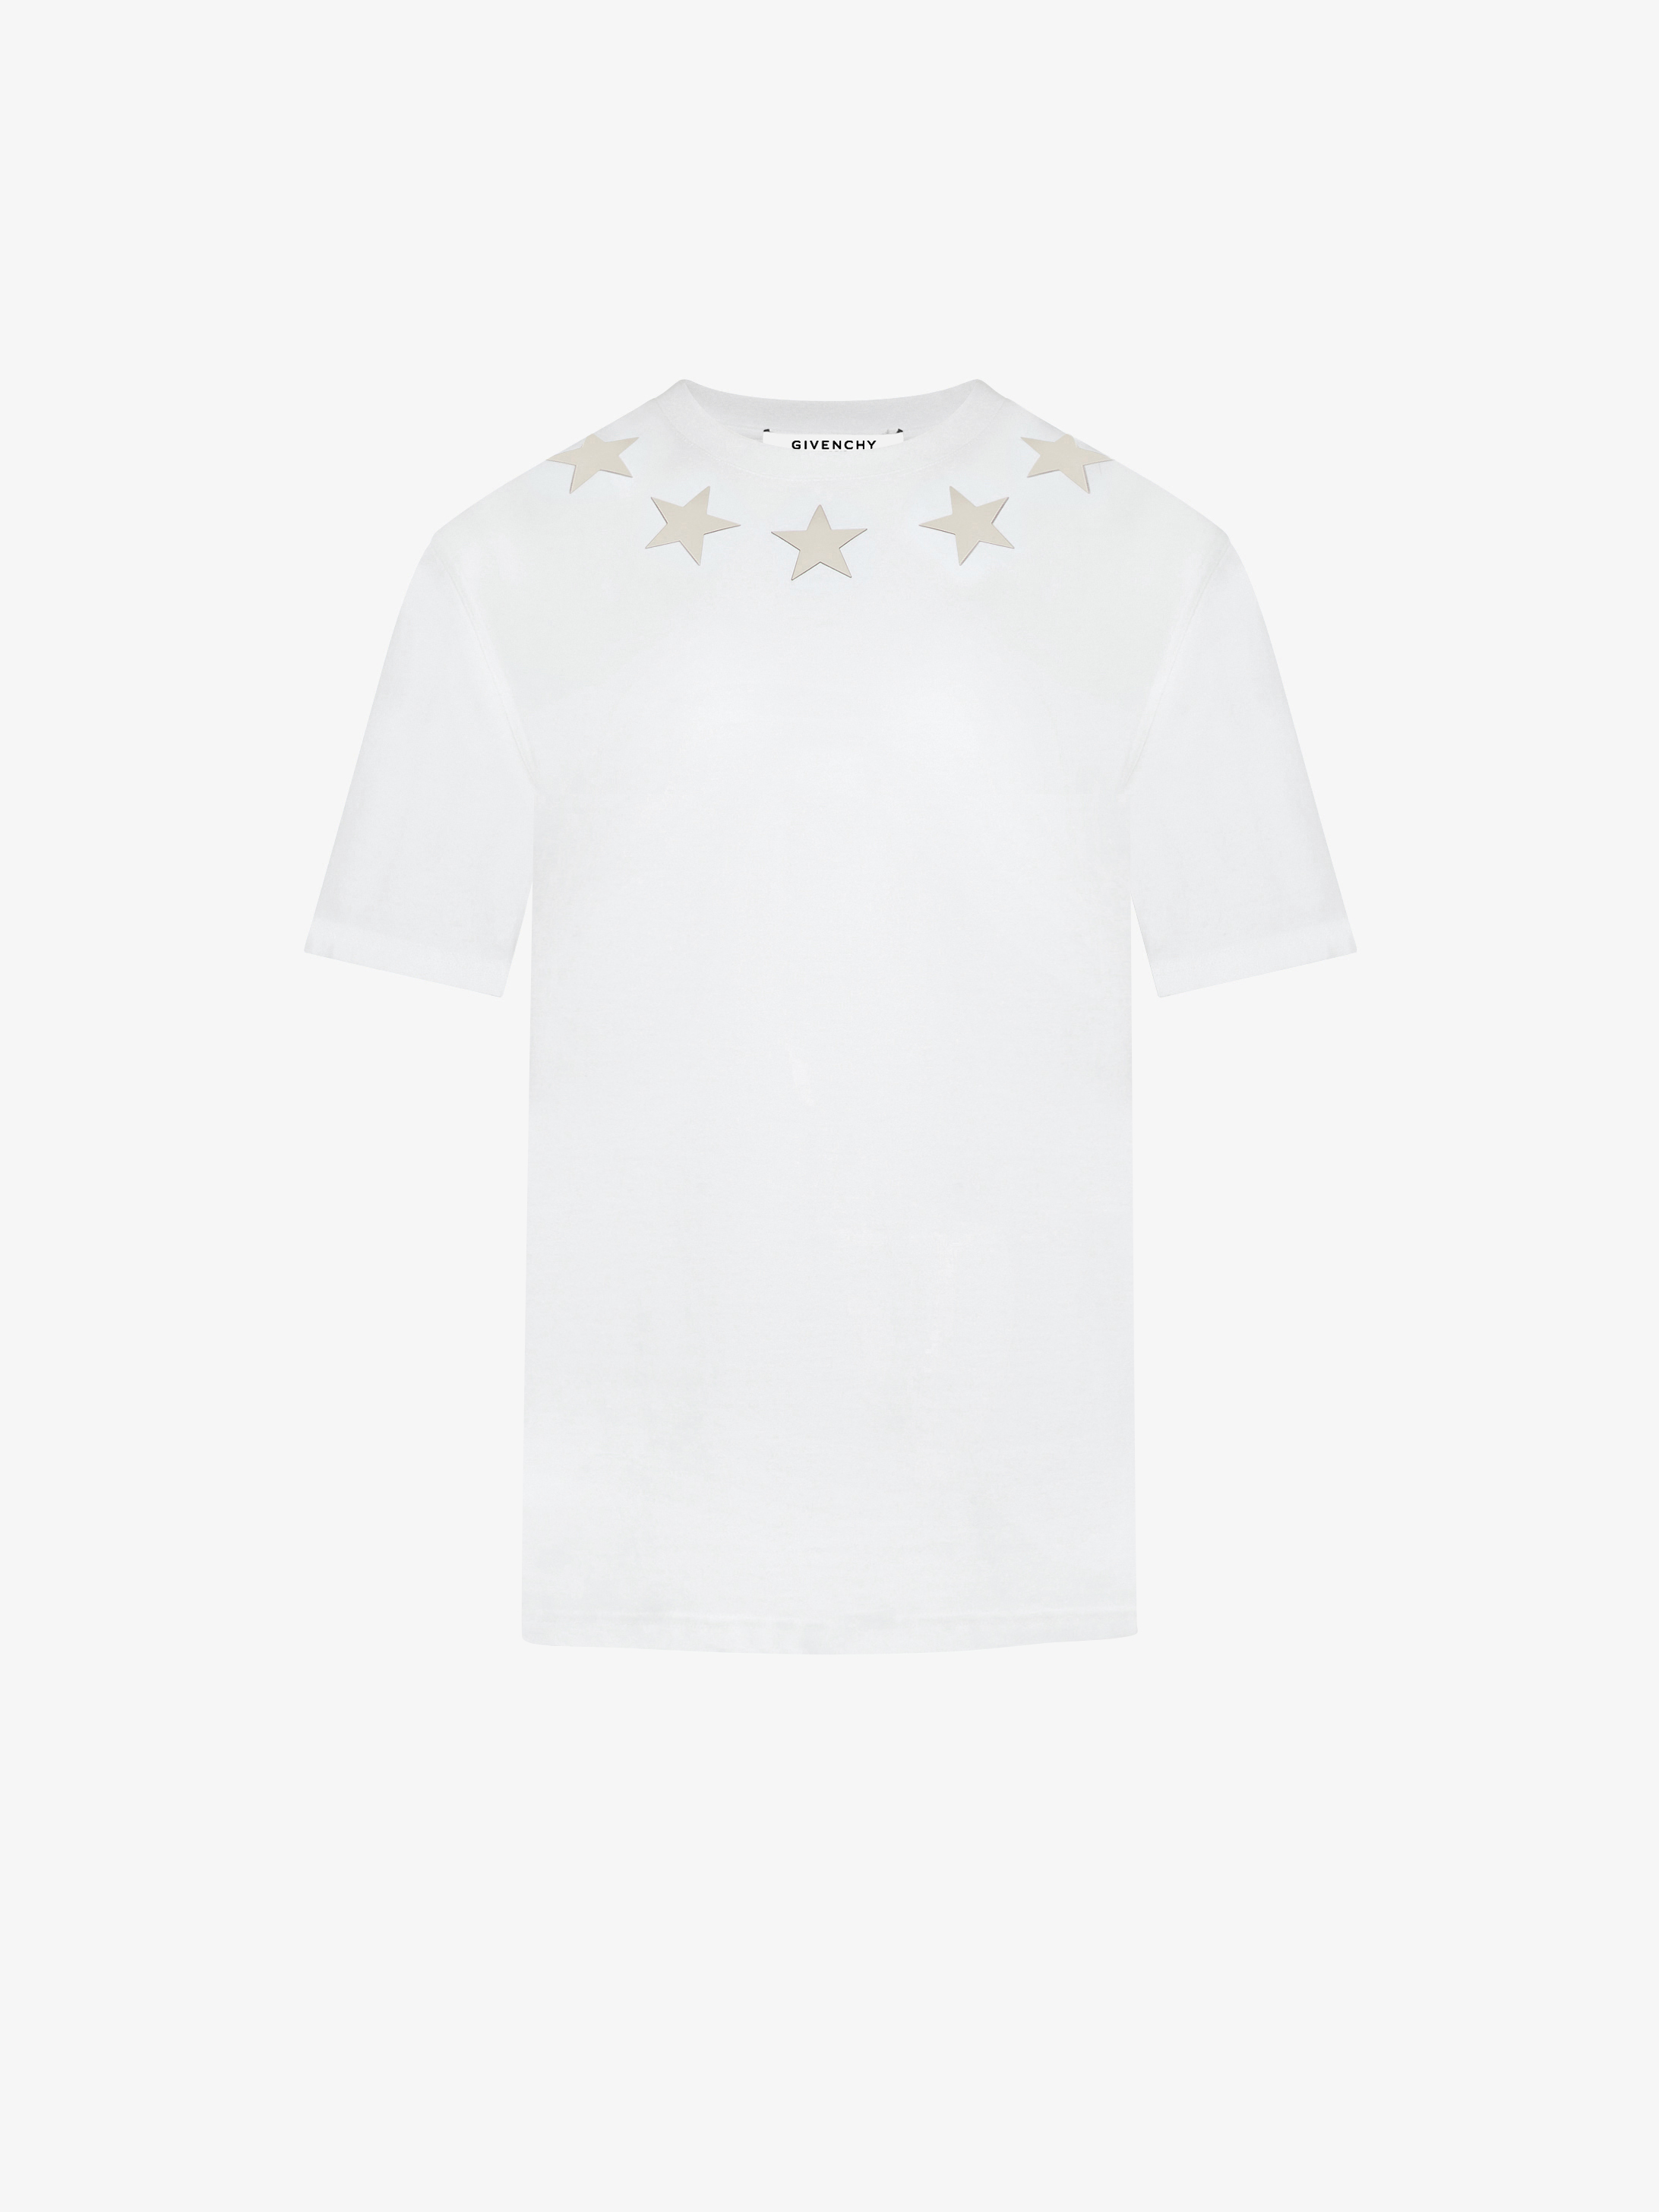 Silver stars around the neck oversized t-shirt